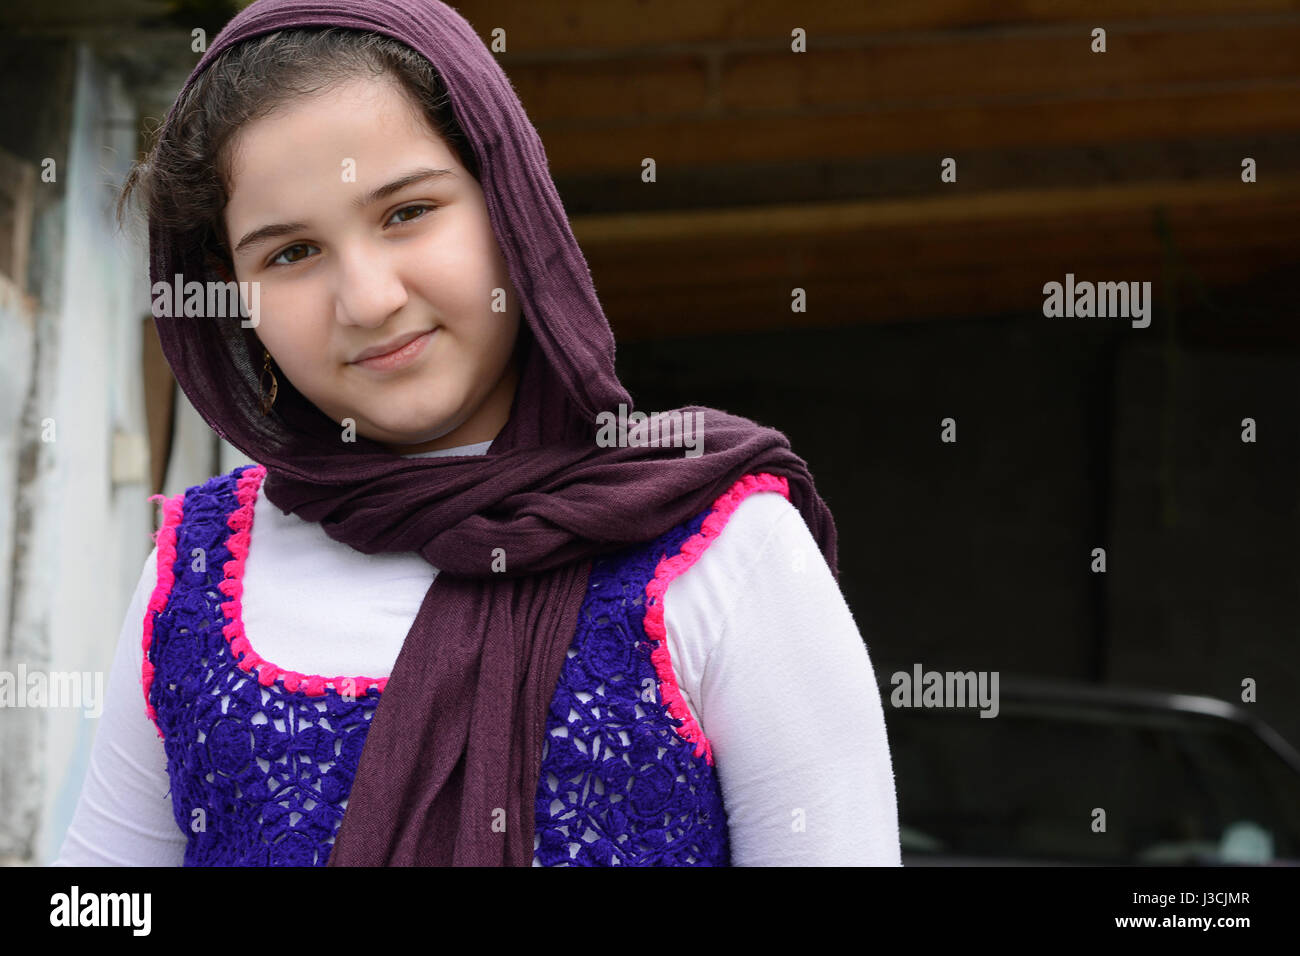 Portrait of Teenage Beautiful Girl Wearing Traditional Knitted Cloth with Shawl - Stock Image